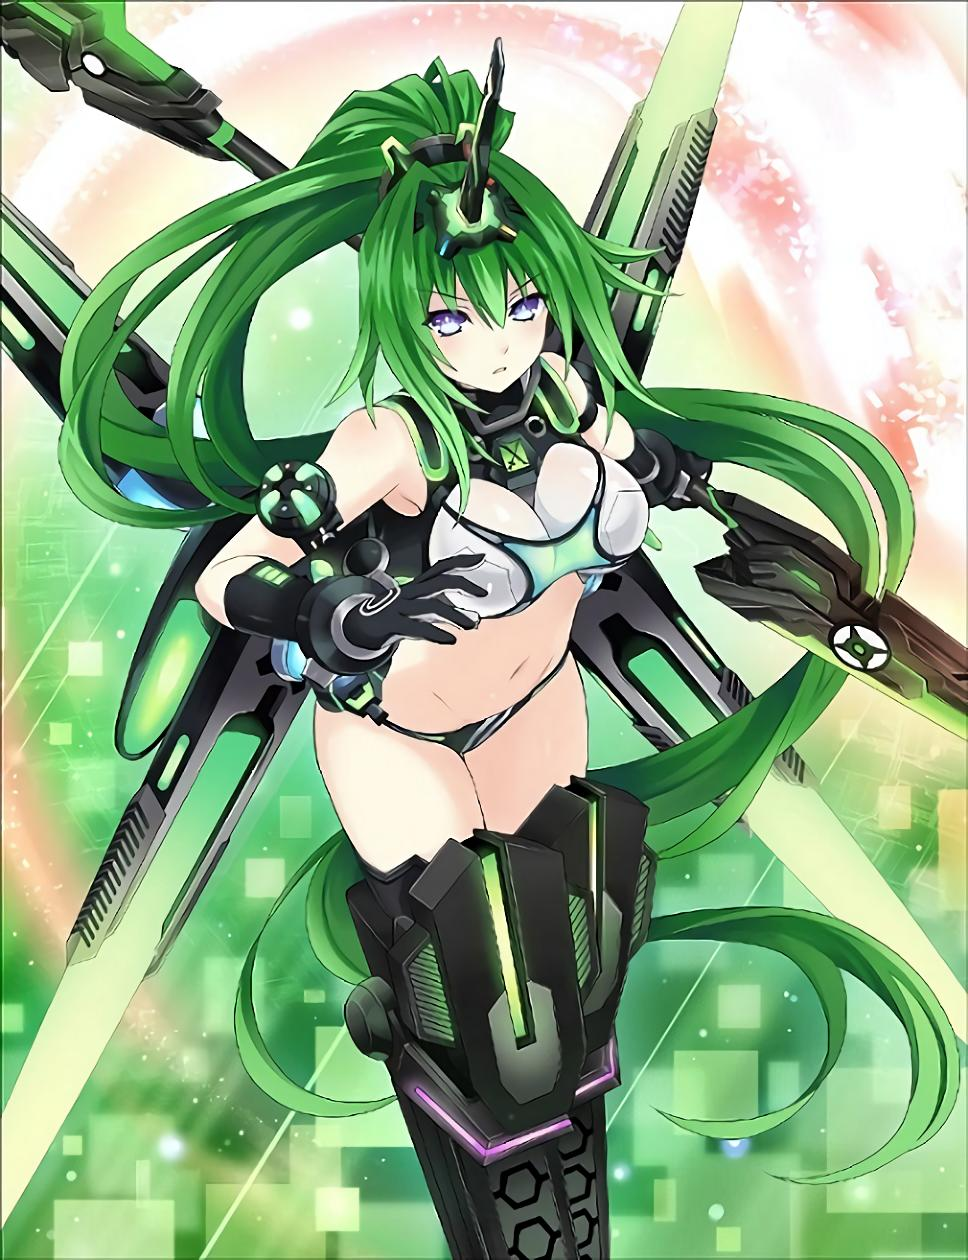 1girl absurdly_long_hair bangs bare_shoulders blue_eyes breasts choujigen_game_neptune crop_top green_hair green_heart headgear highres horn large_breasts long_hair looking_at_viewer navel neptune_(series) next_green ponytail power_symbol solo symbol-shaped_pupils tsunako vert very_long_hair weapon